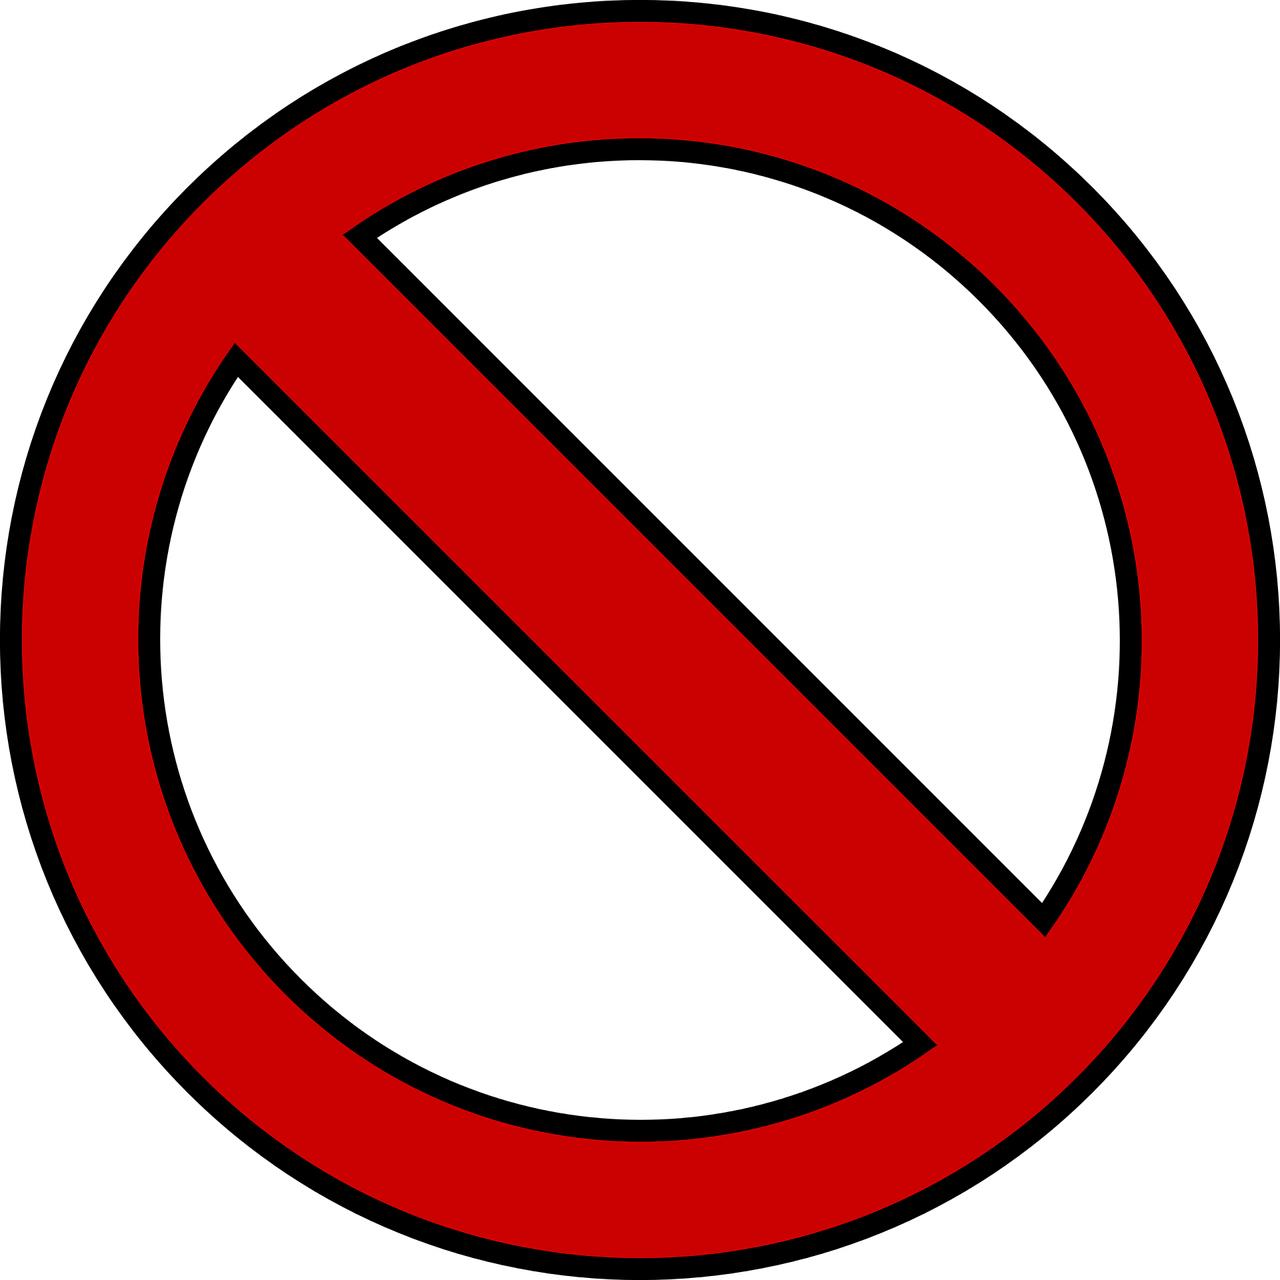 Banned symbol png. Ban prohibited shield icon